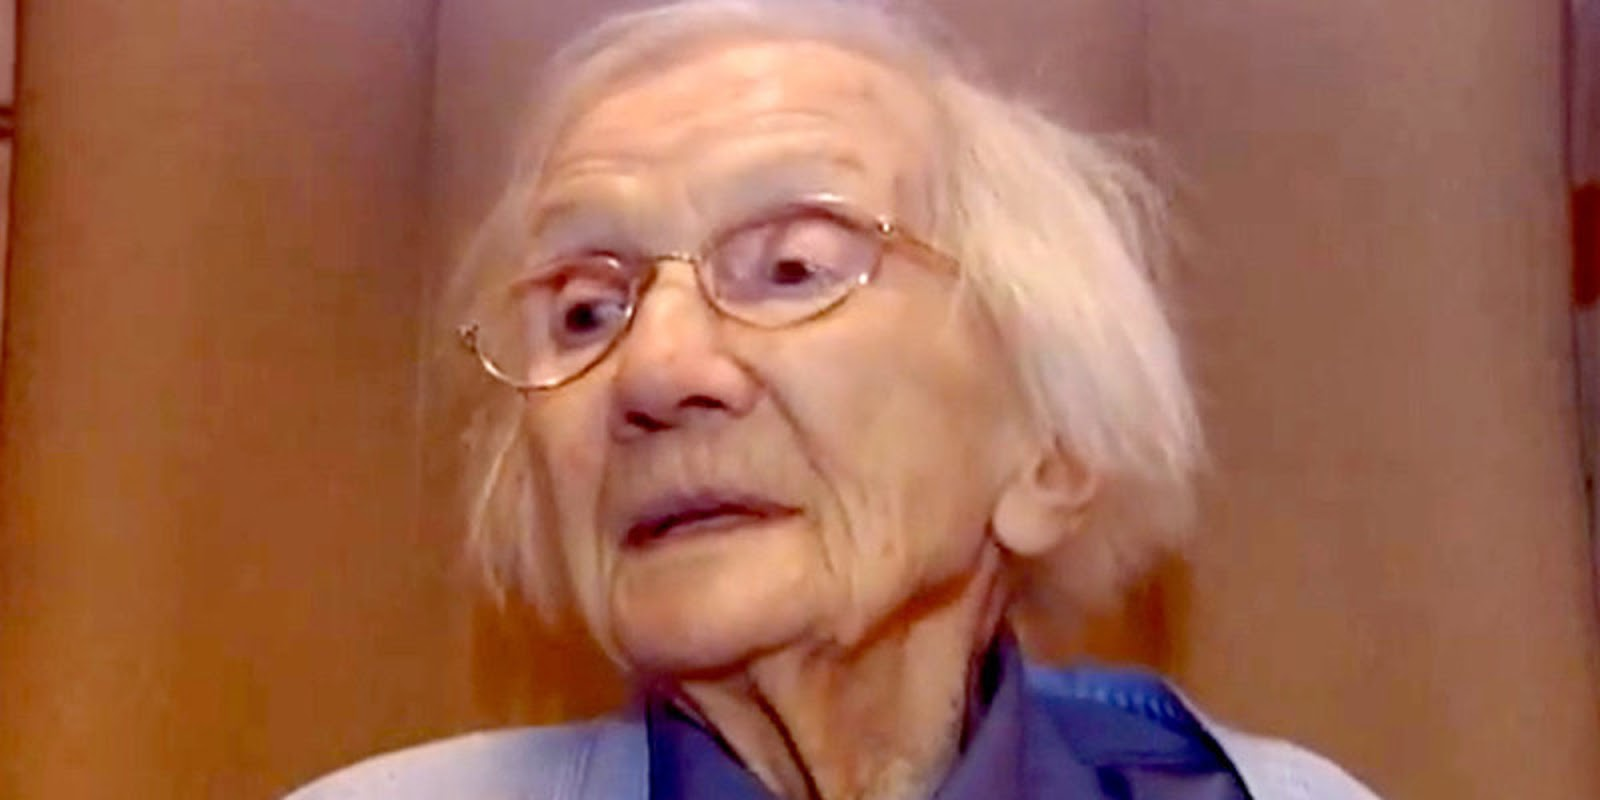 109-Year-Old Woman Revealed That Her Secret To Longevity Was Avoiding Men